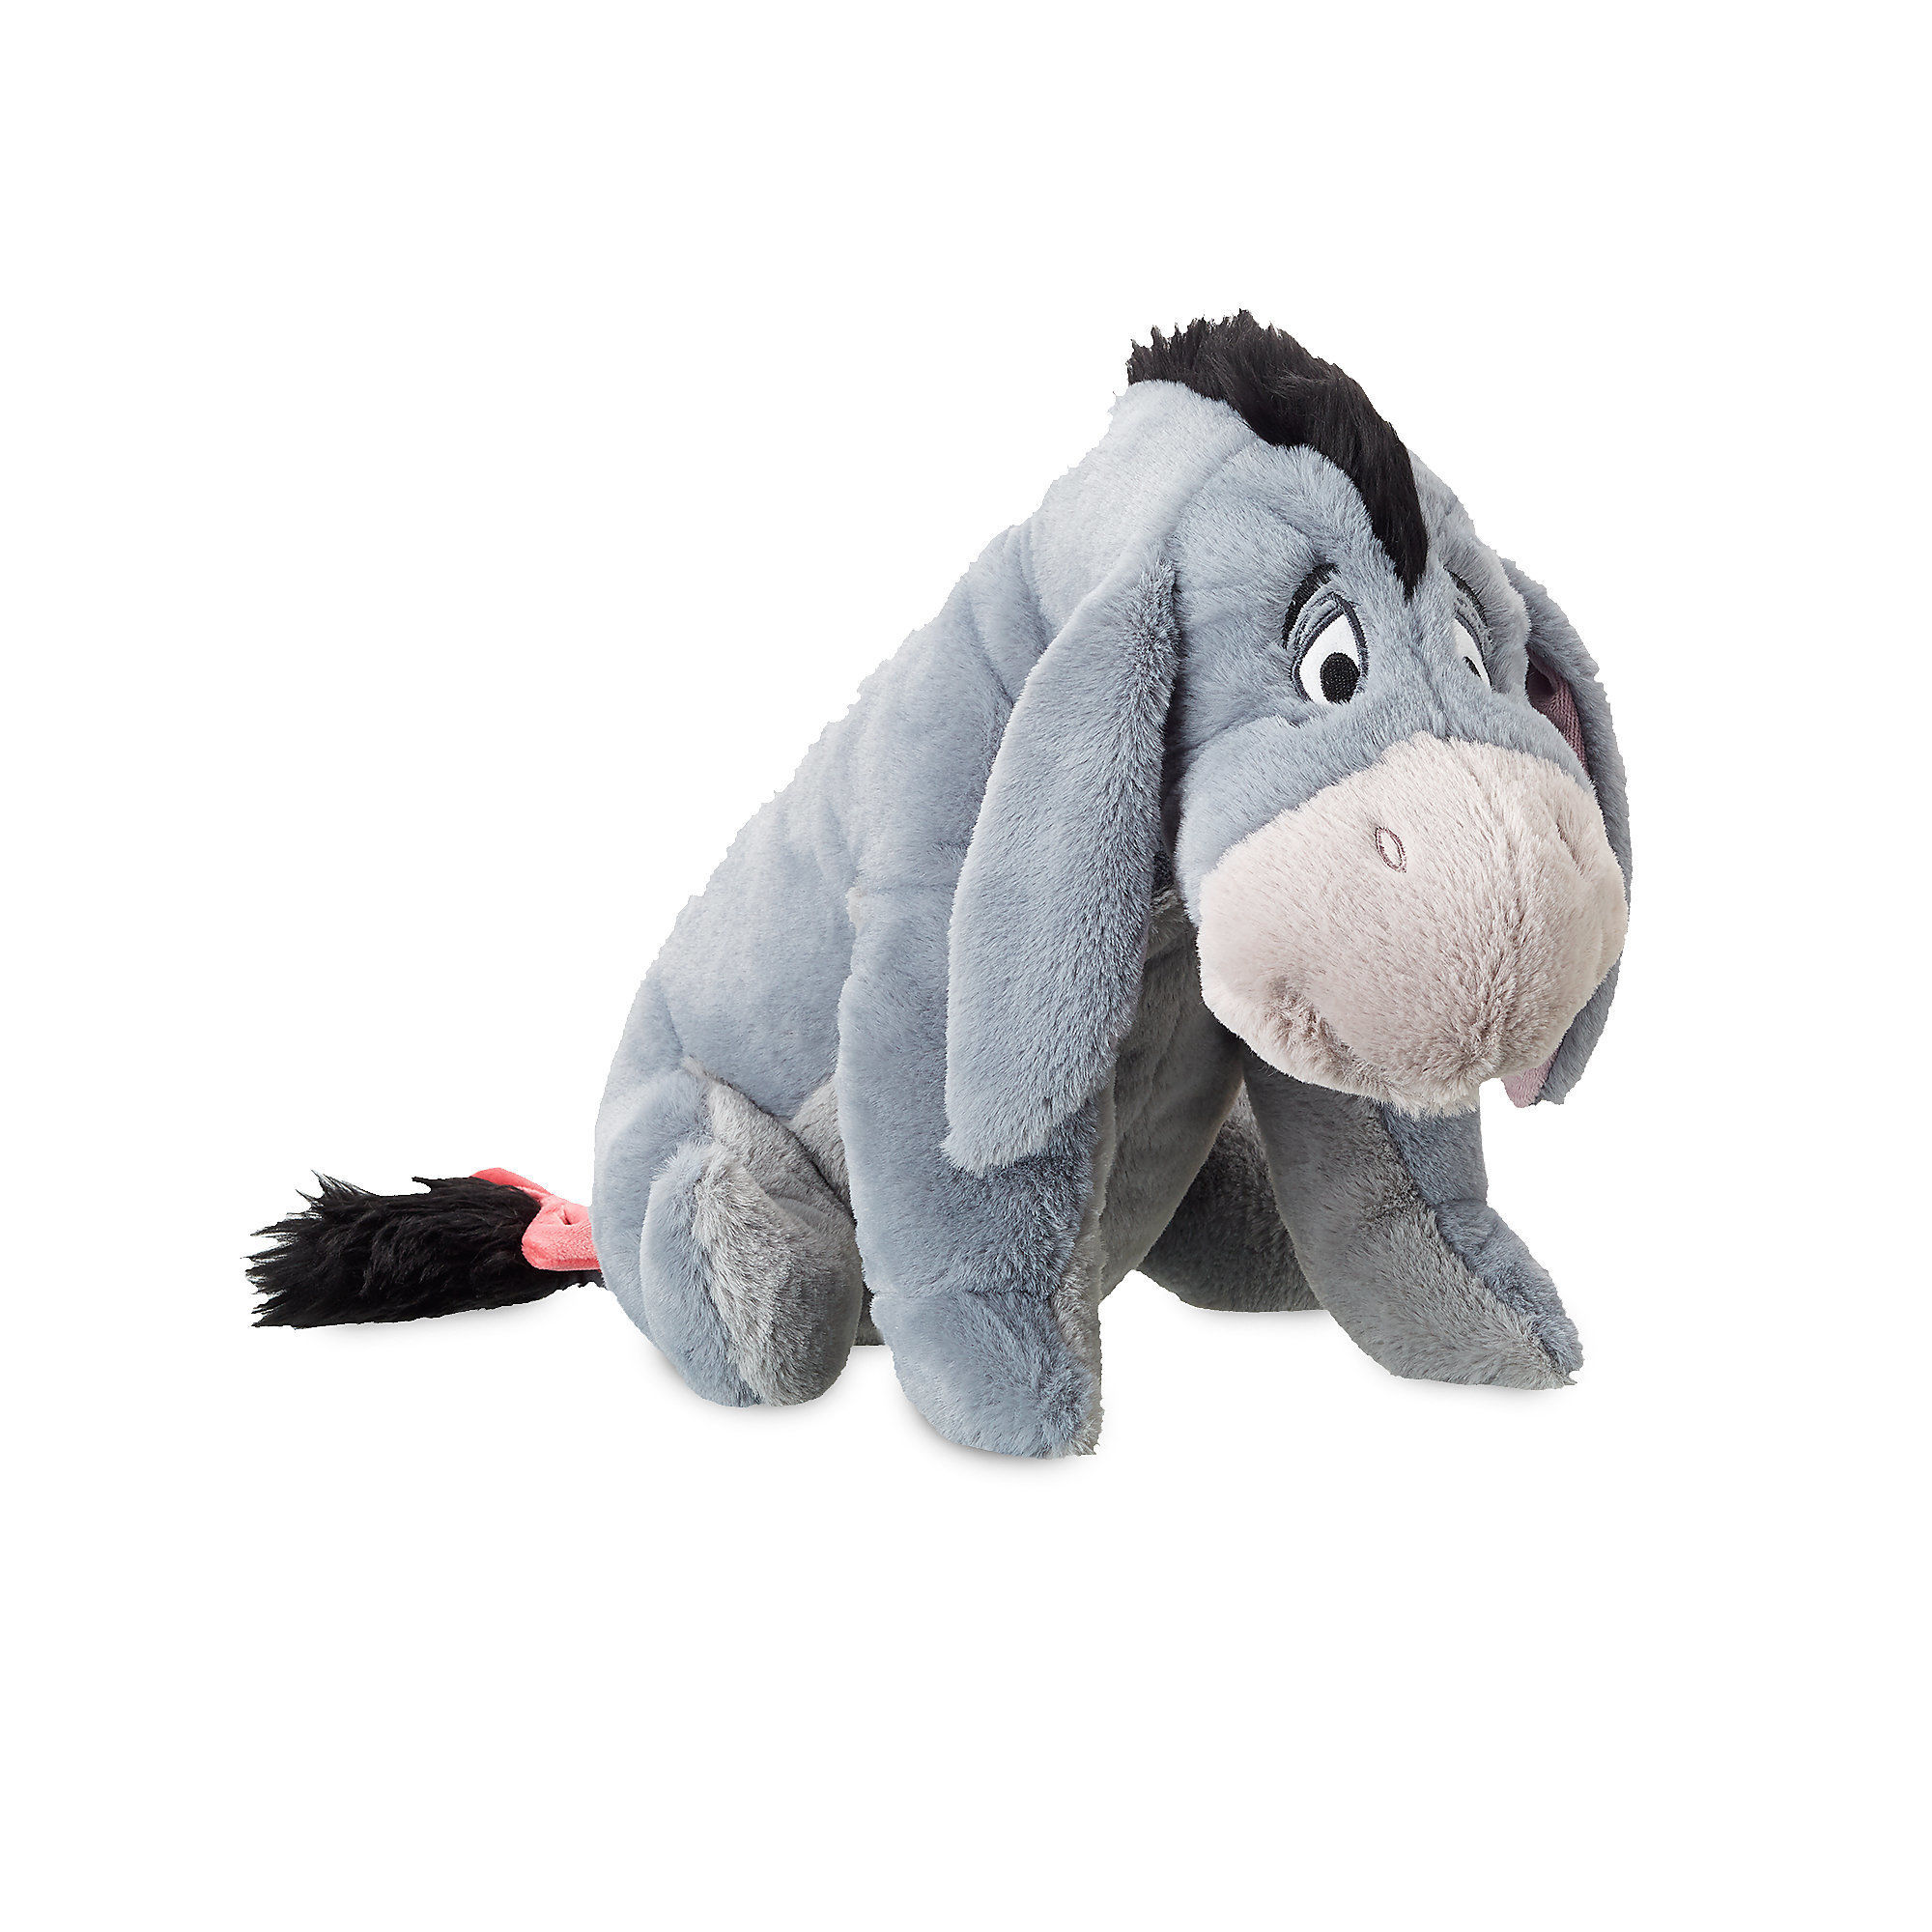 Disney Winnie the Pooh Large Plush Eeyore Soft Toy